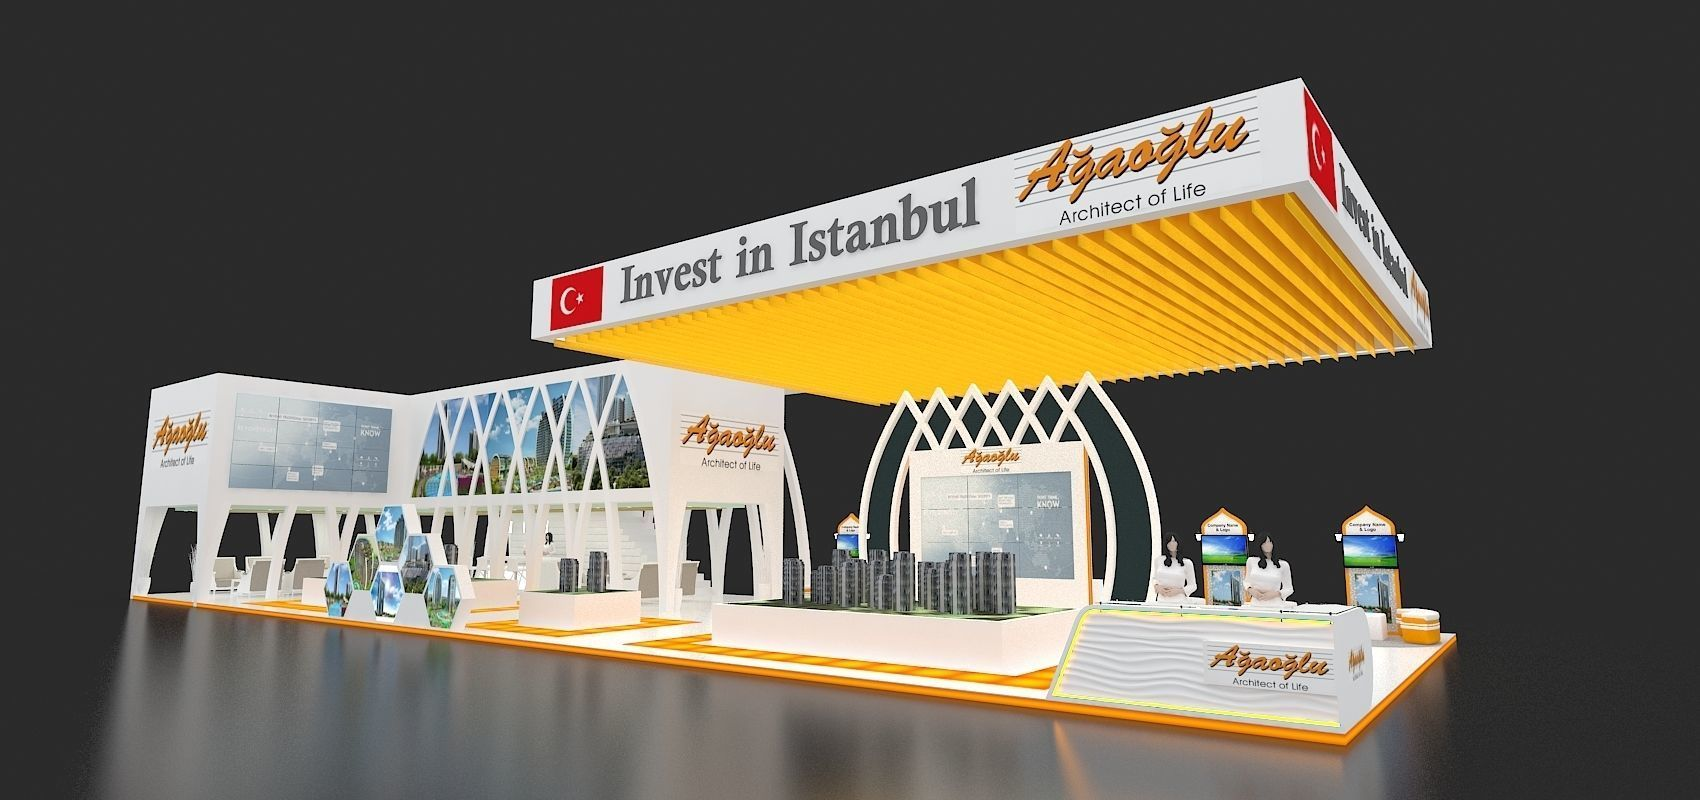 Exhibition Stand Or Booth : Exhibition stand booth sqm d model cgtrader